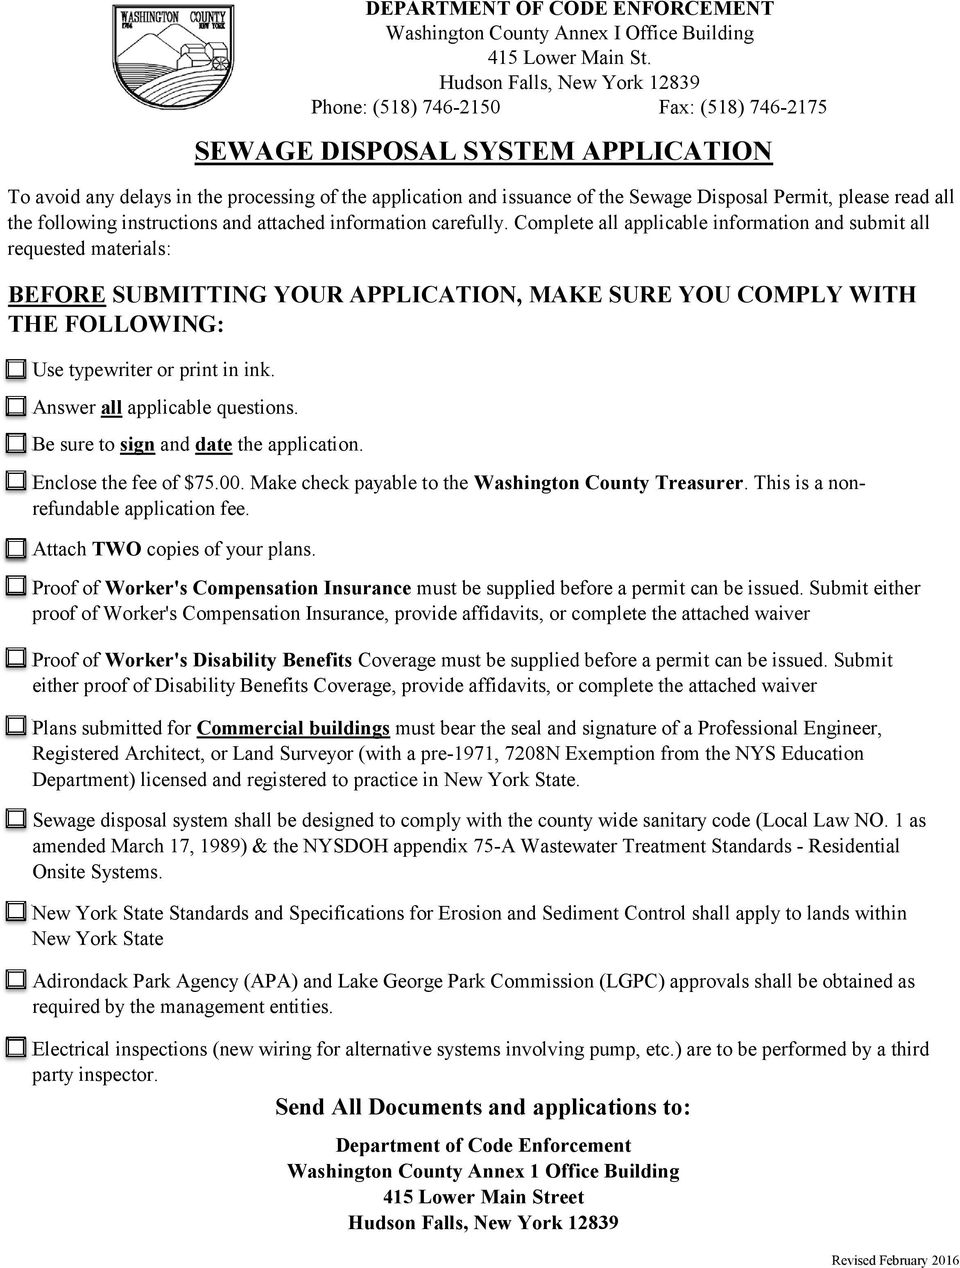 Answer all applicable questions. Be sure to sign and date the application. Attach TWO copies of your plans. DEPARTMENT OF CODE ENFORCEMENT SEWAGE DISPOSAL SYSTEM APPLICATION Enclose the fee of $75.00.